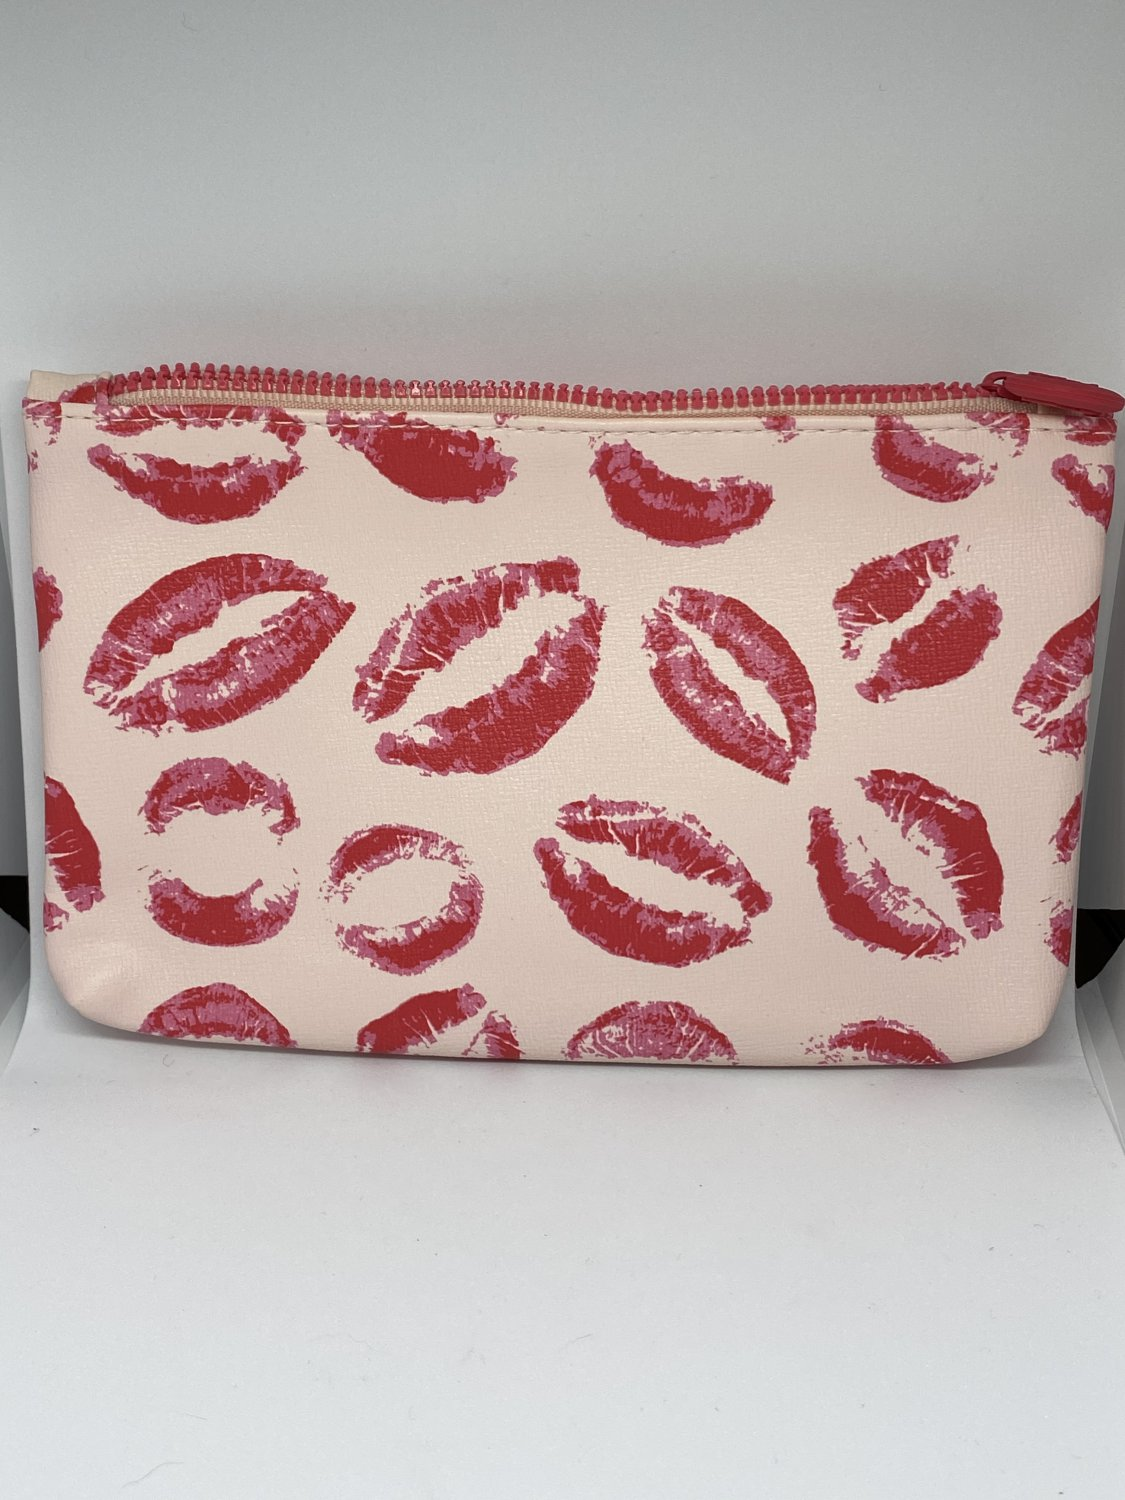 Ipsy MyGlam Glam Bag February 2019 Swoon So Hard Cosmetic case purse Pink Red Lips